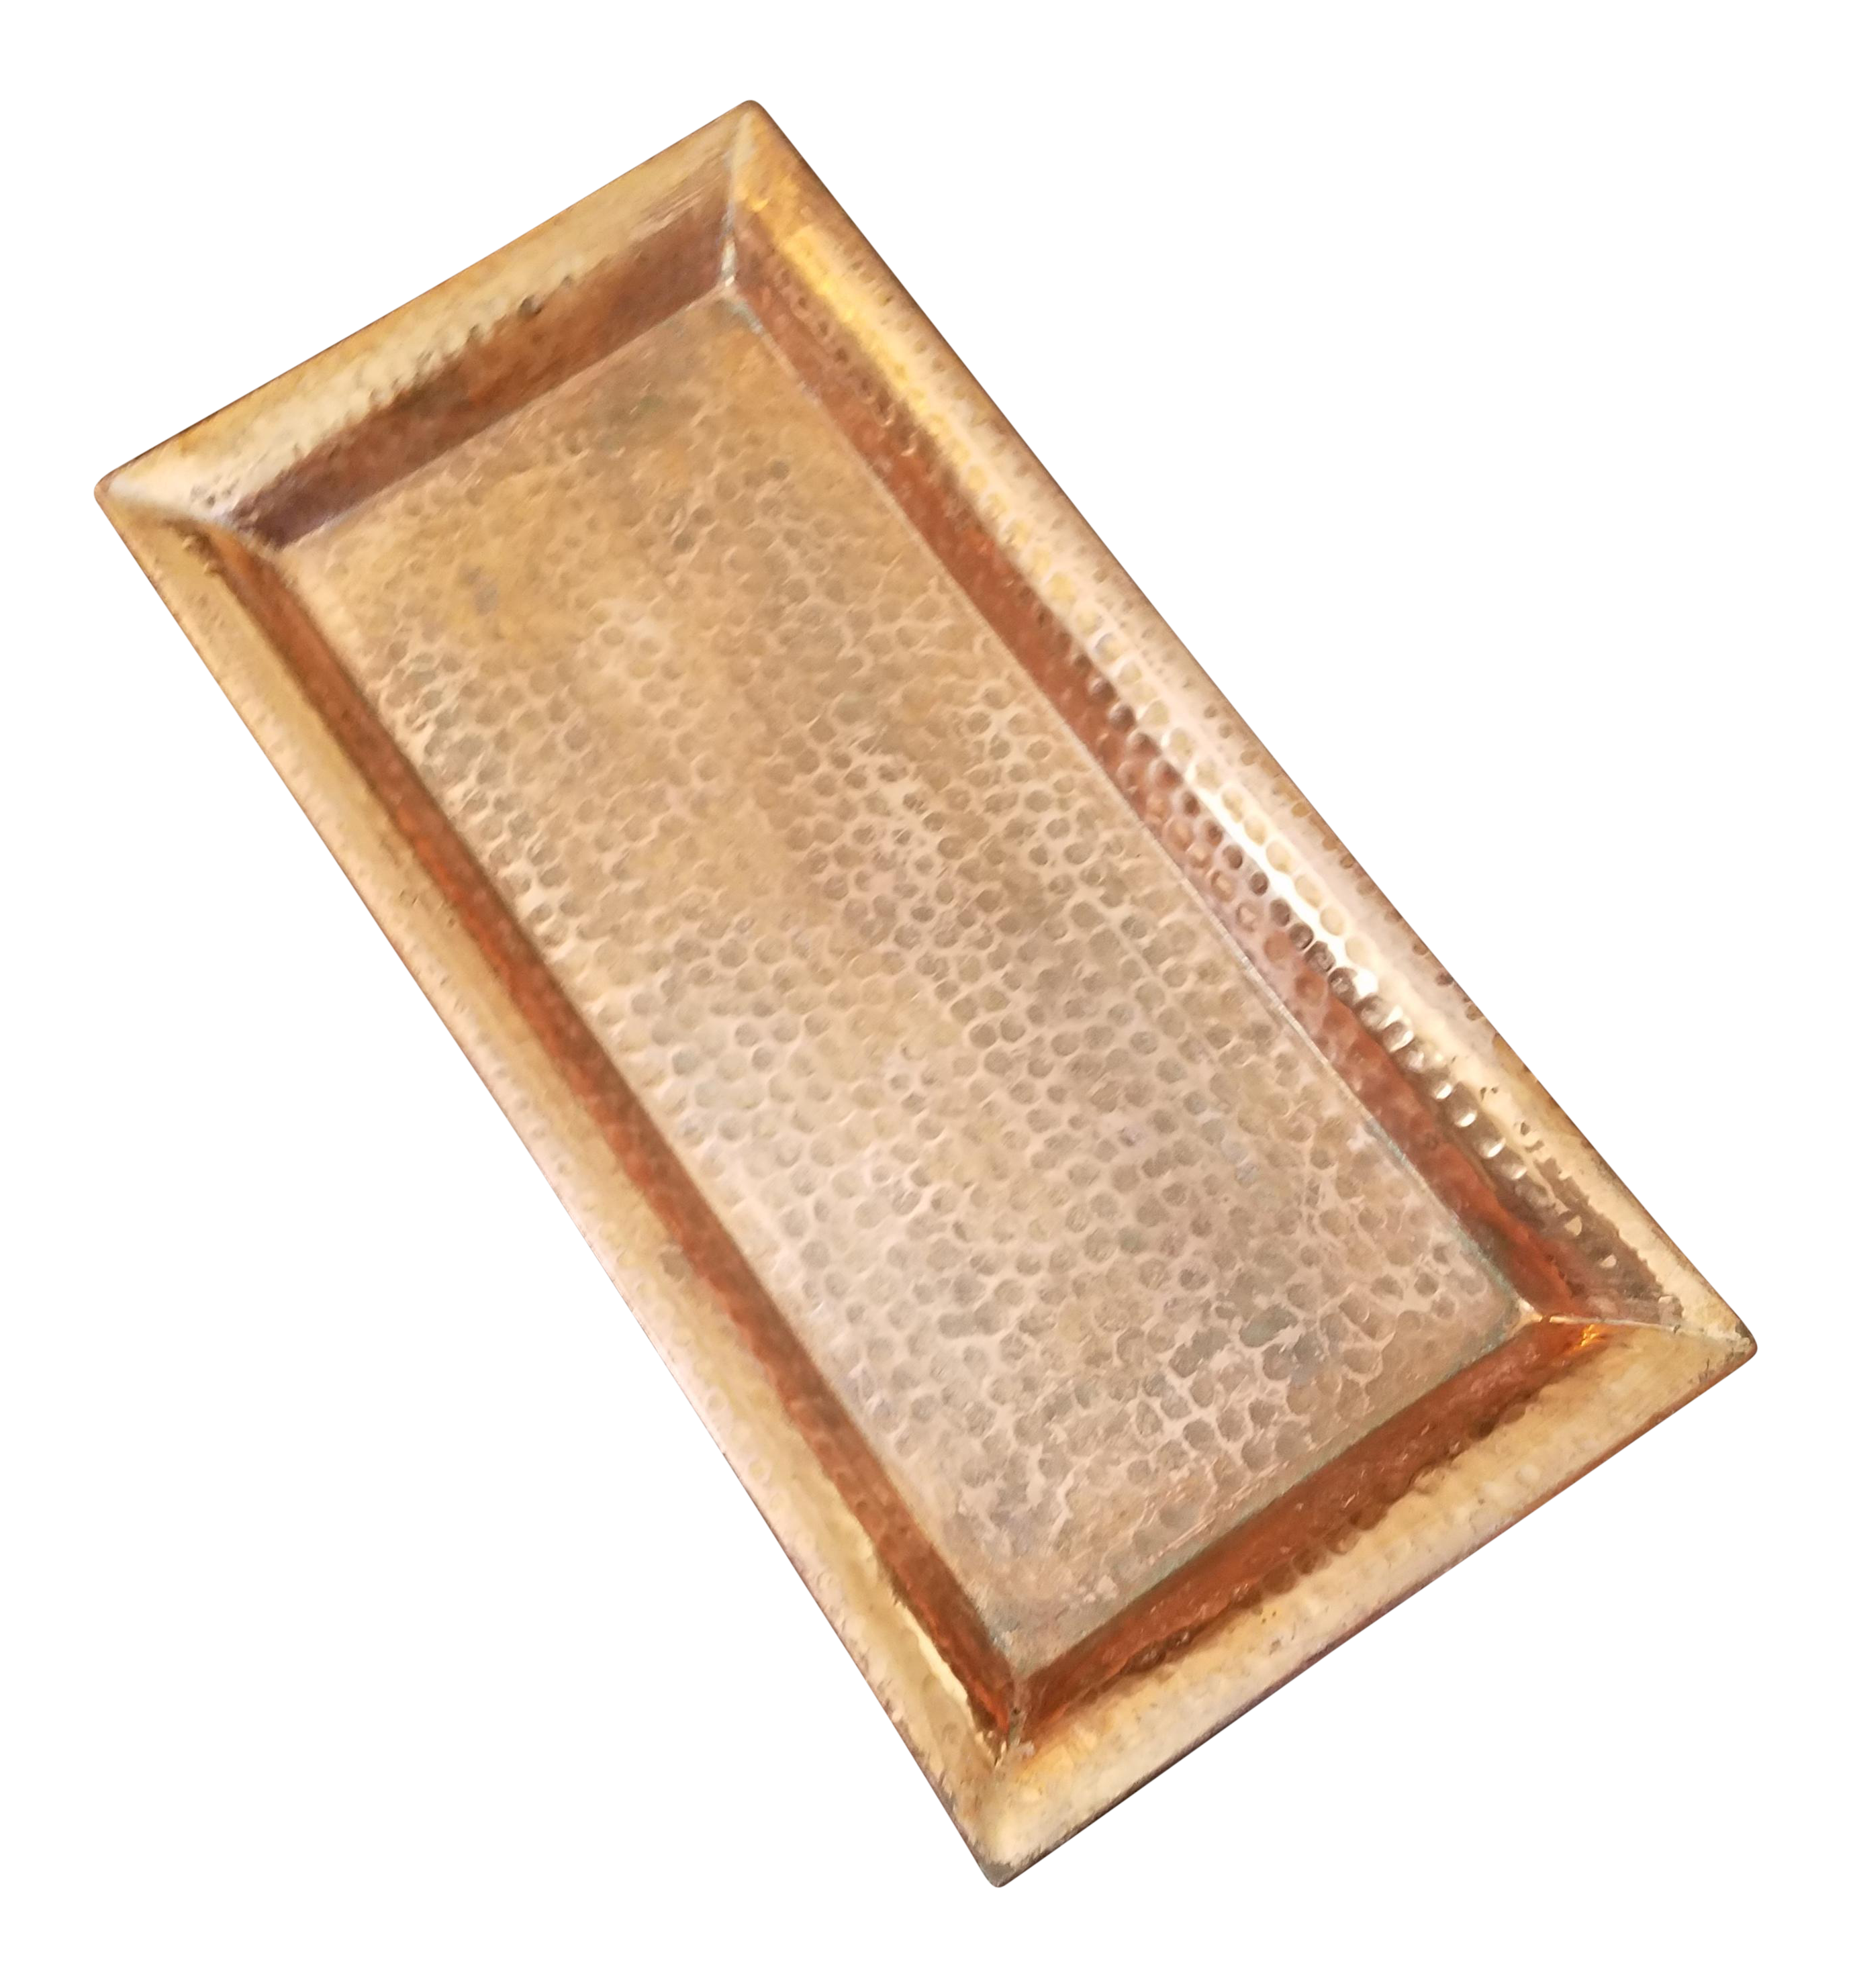 Crate & Barrel Distressed Copper Tray